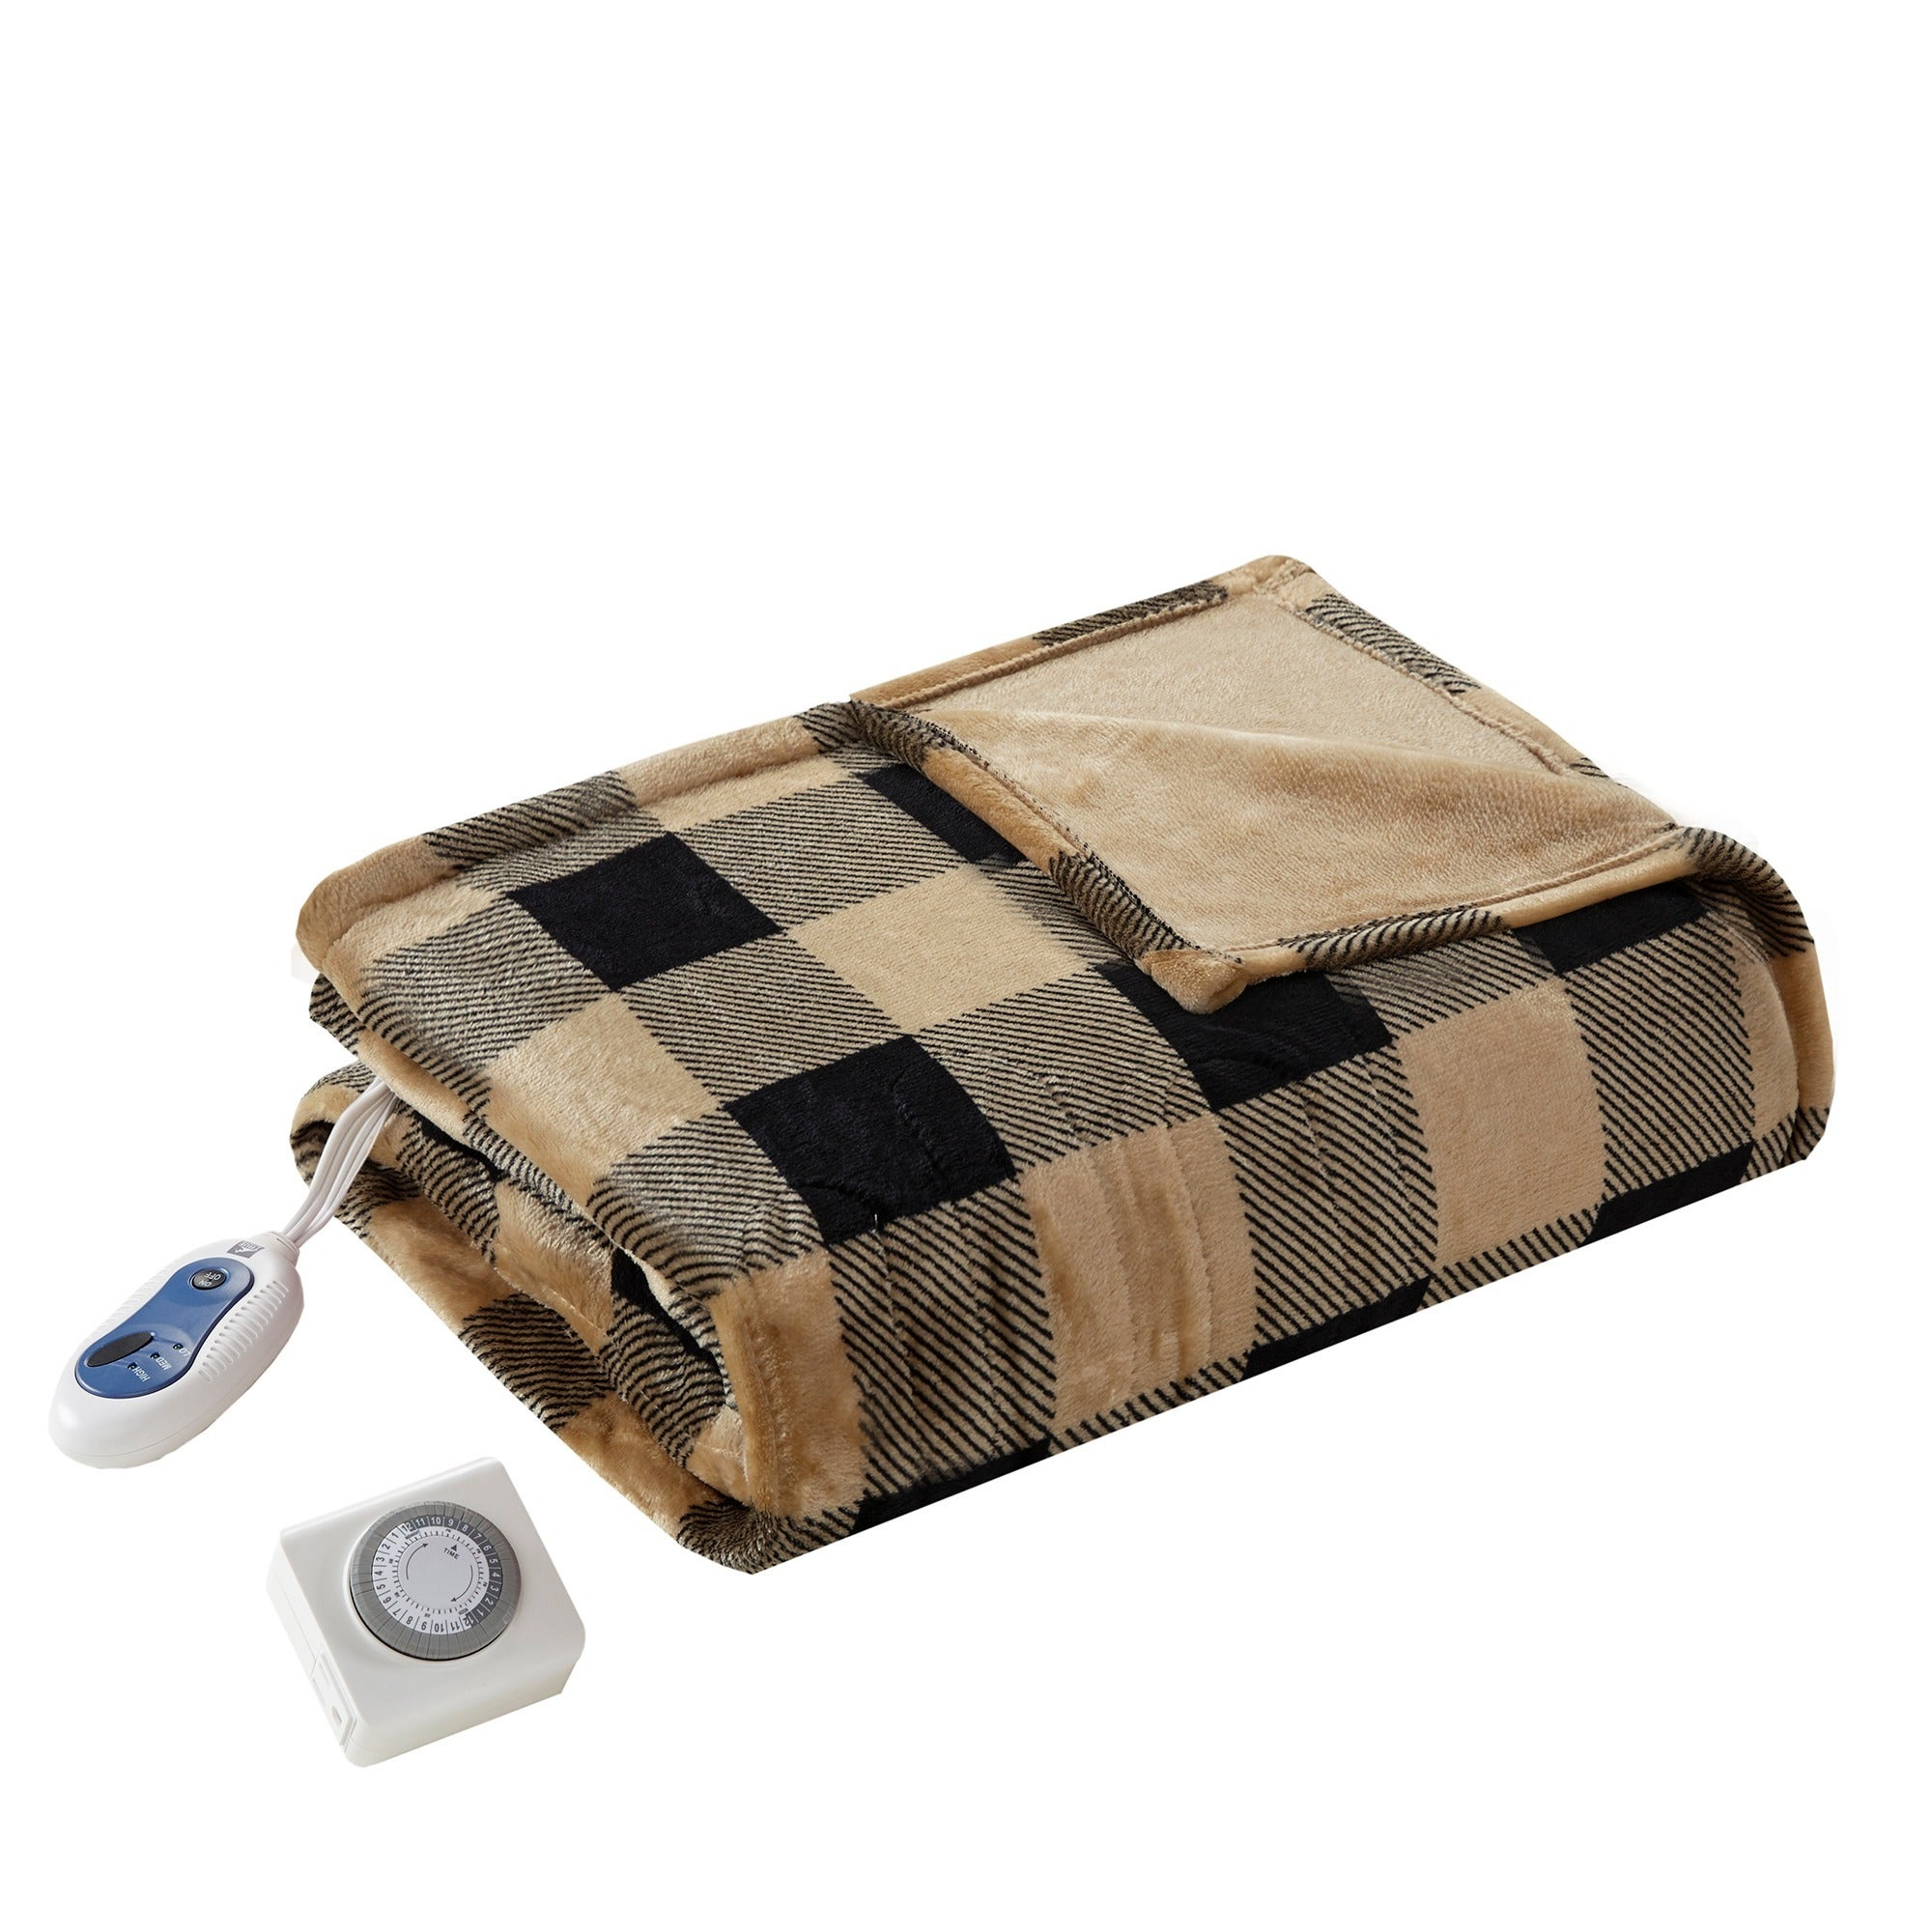 9b0ca000c8 Shop True North by Sleep Philosophy Buffalo Check Oversized Printed Heated Plush  Throw - Free Shipping Today - Overstock - 17931677